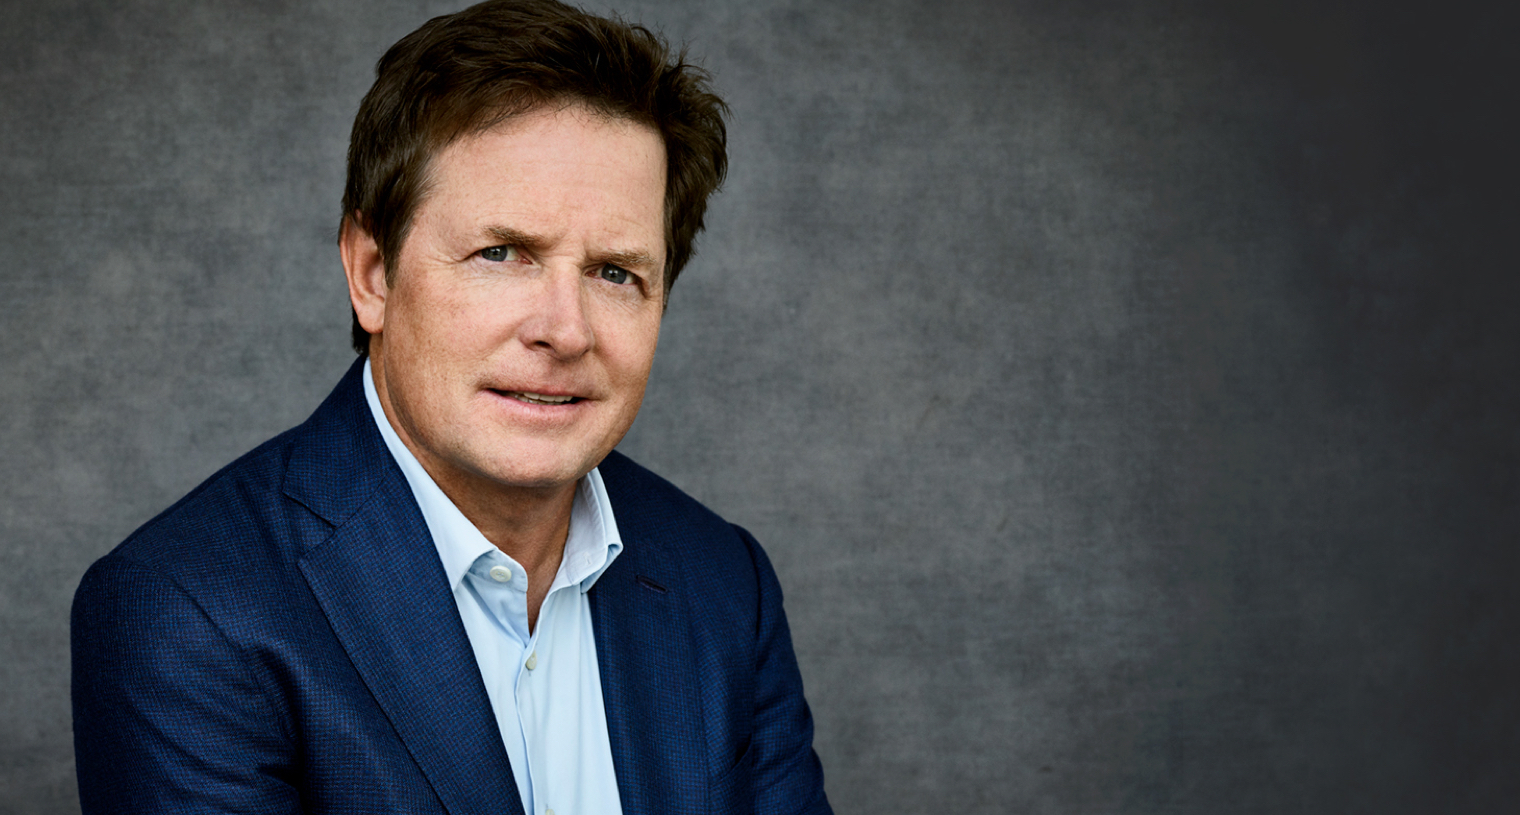 Michael J. Fox background image